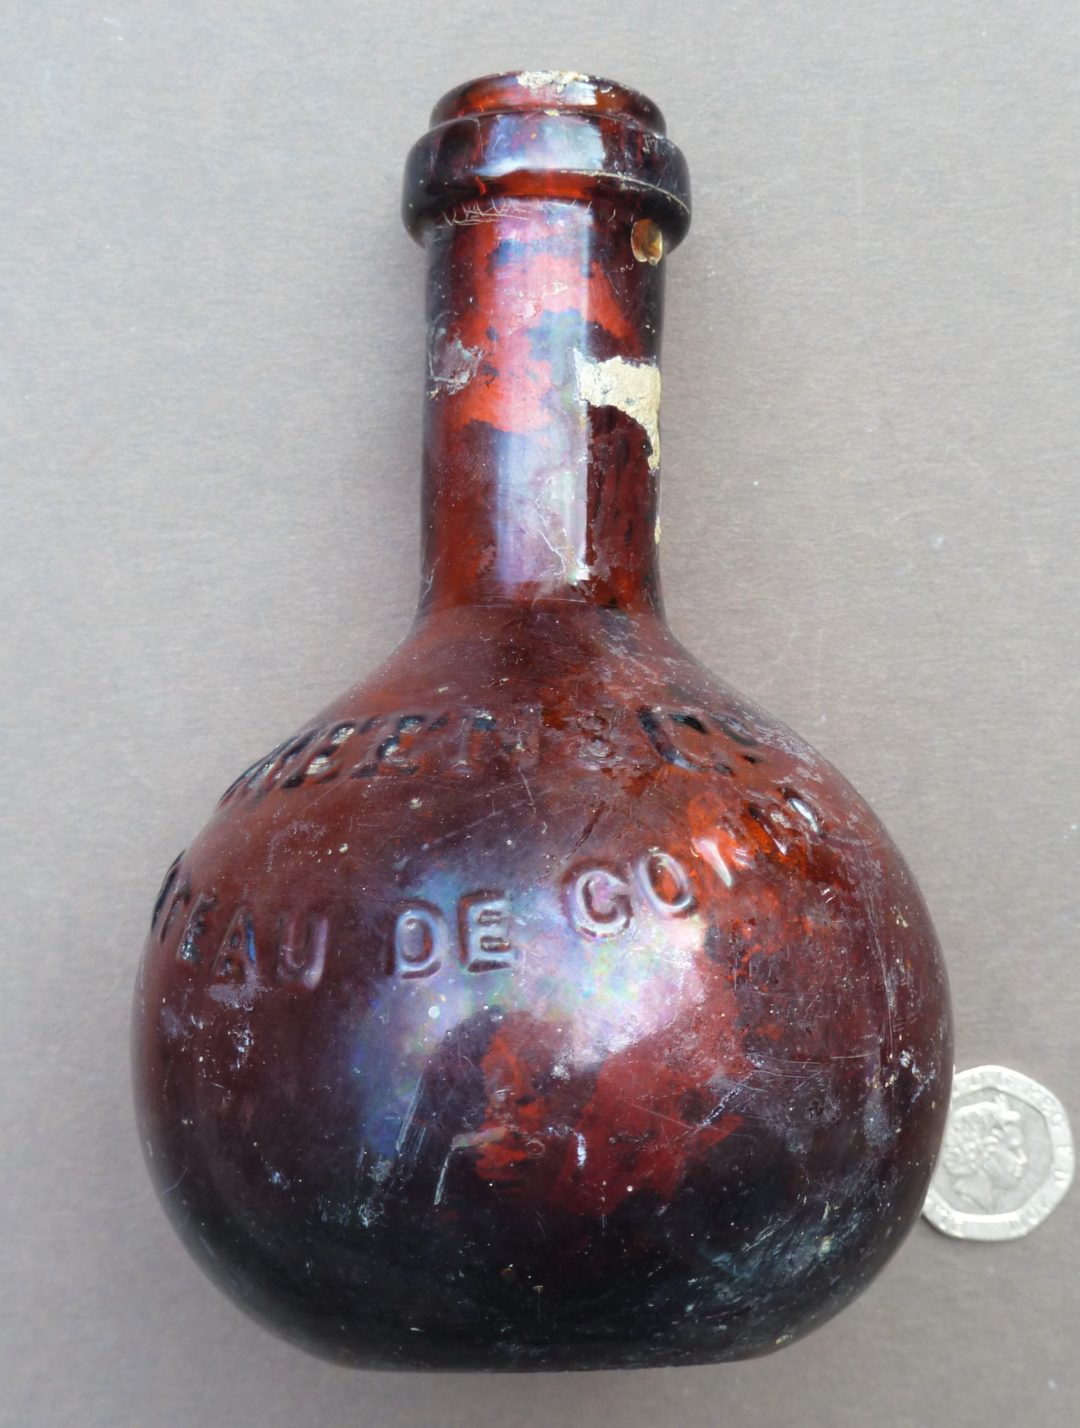 Chateau de Conde bottle